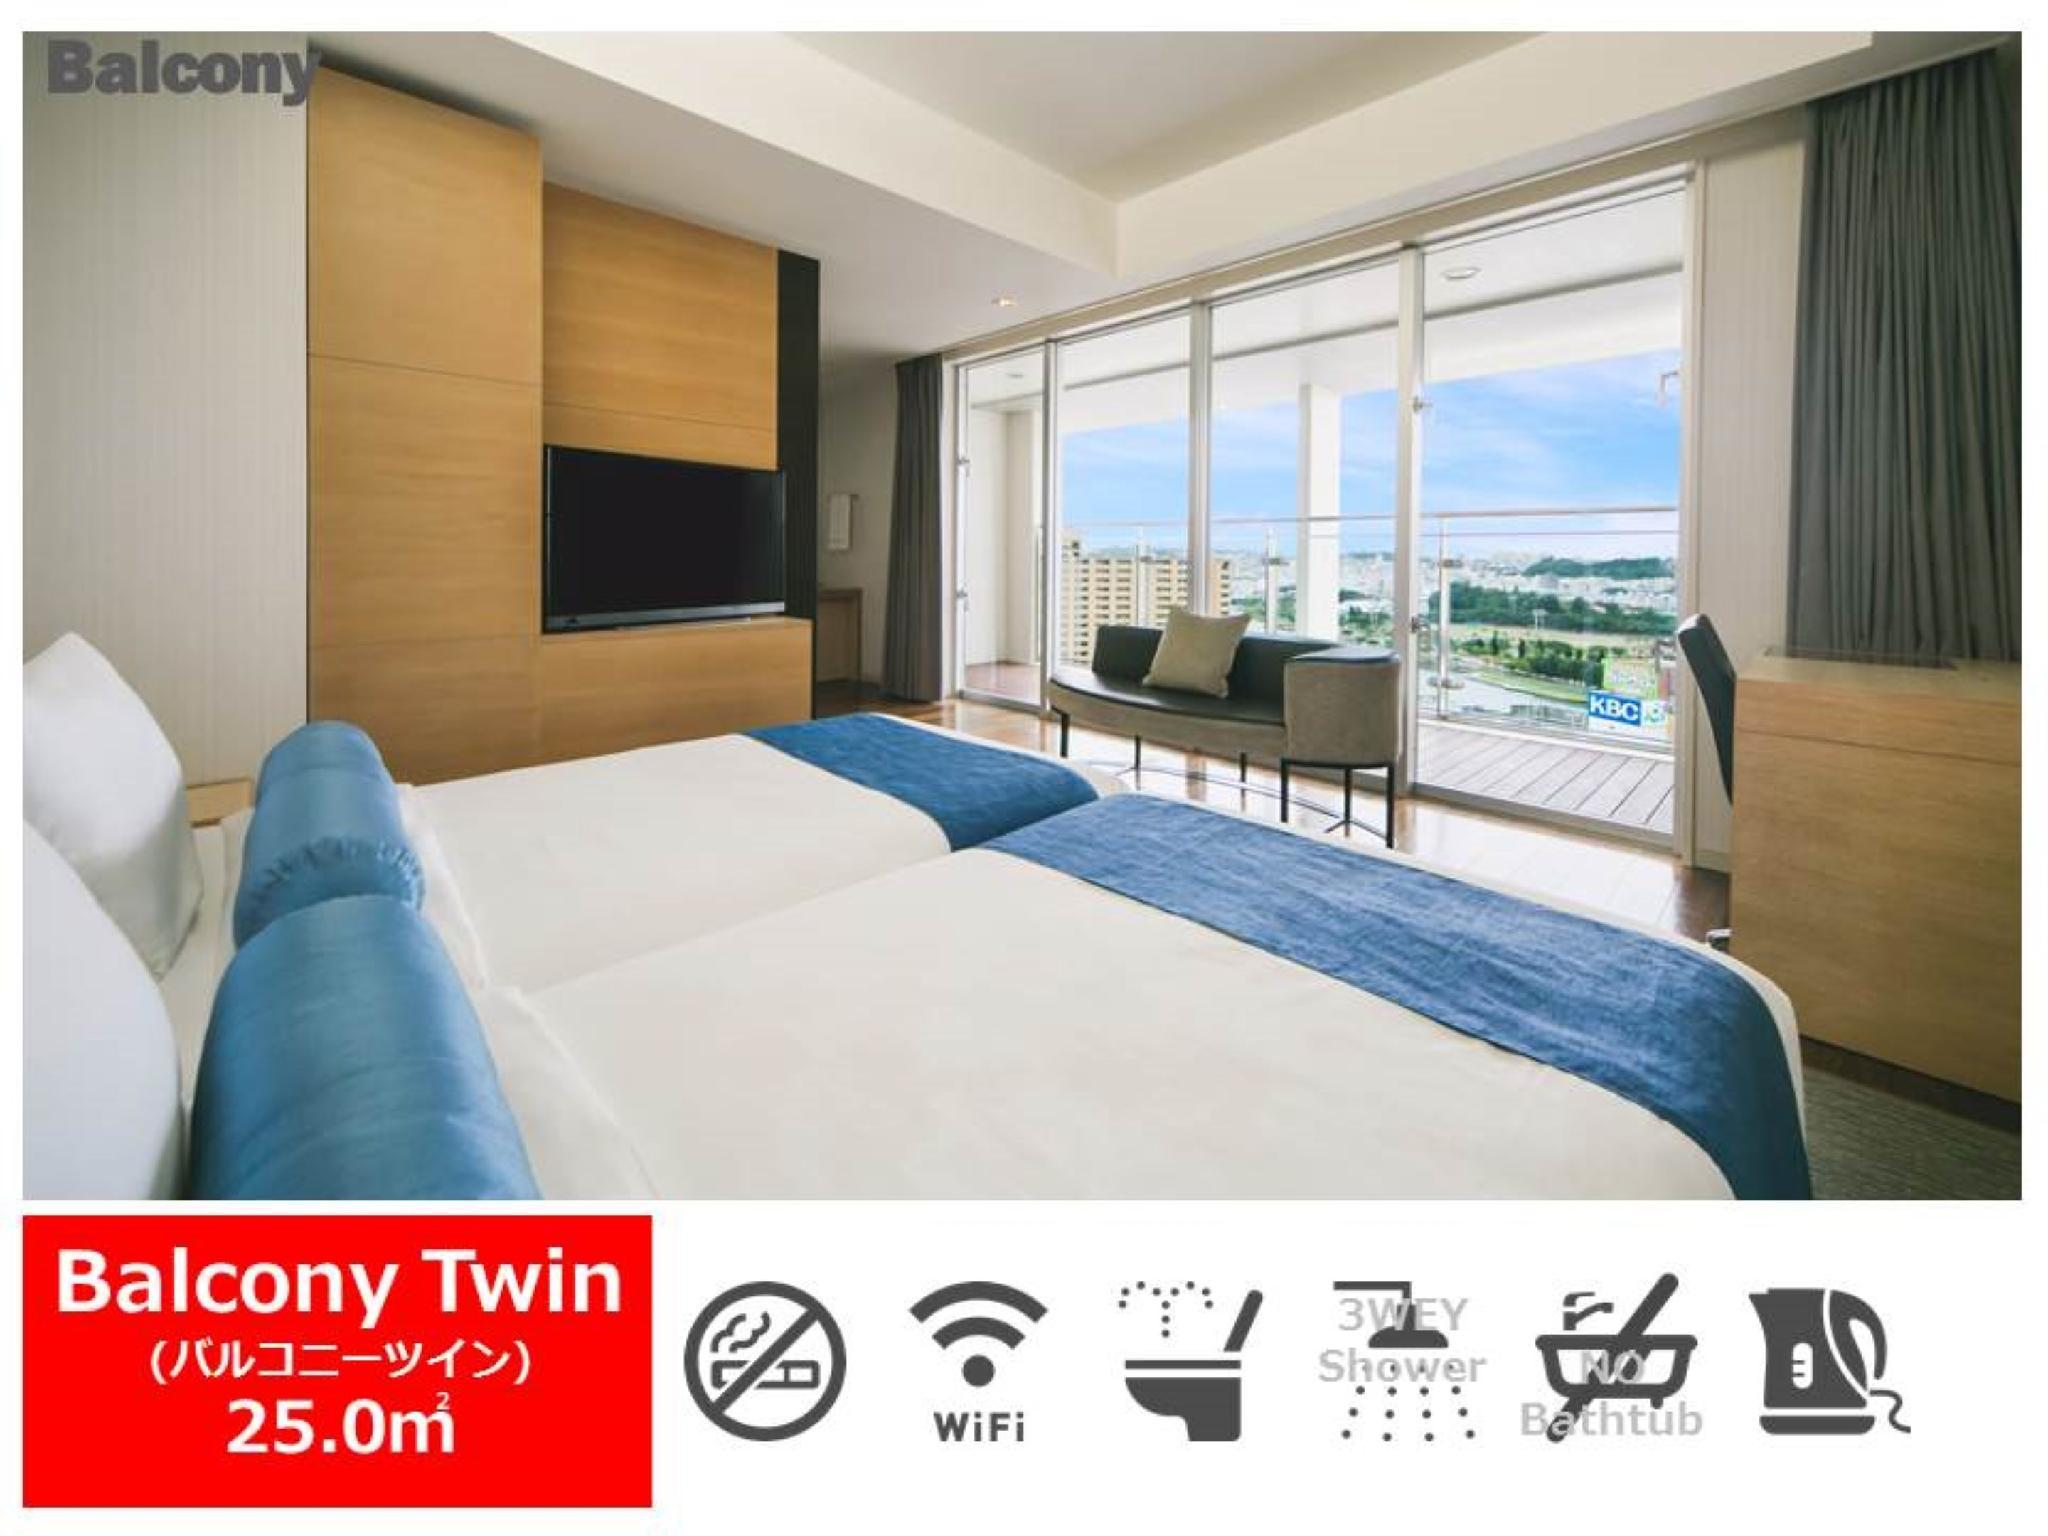 豪華(兩床)房 - 有陽台 (Deluxe Twin Room with Balcony)